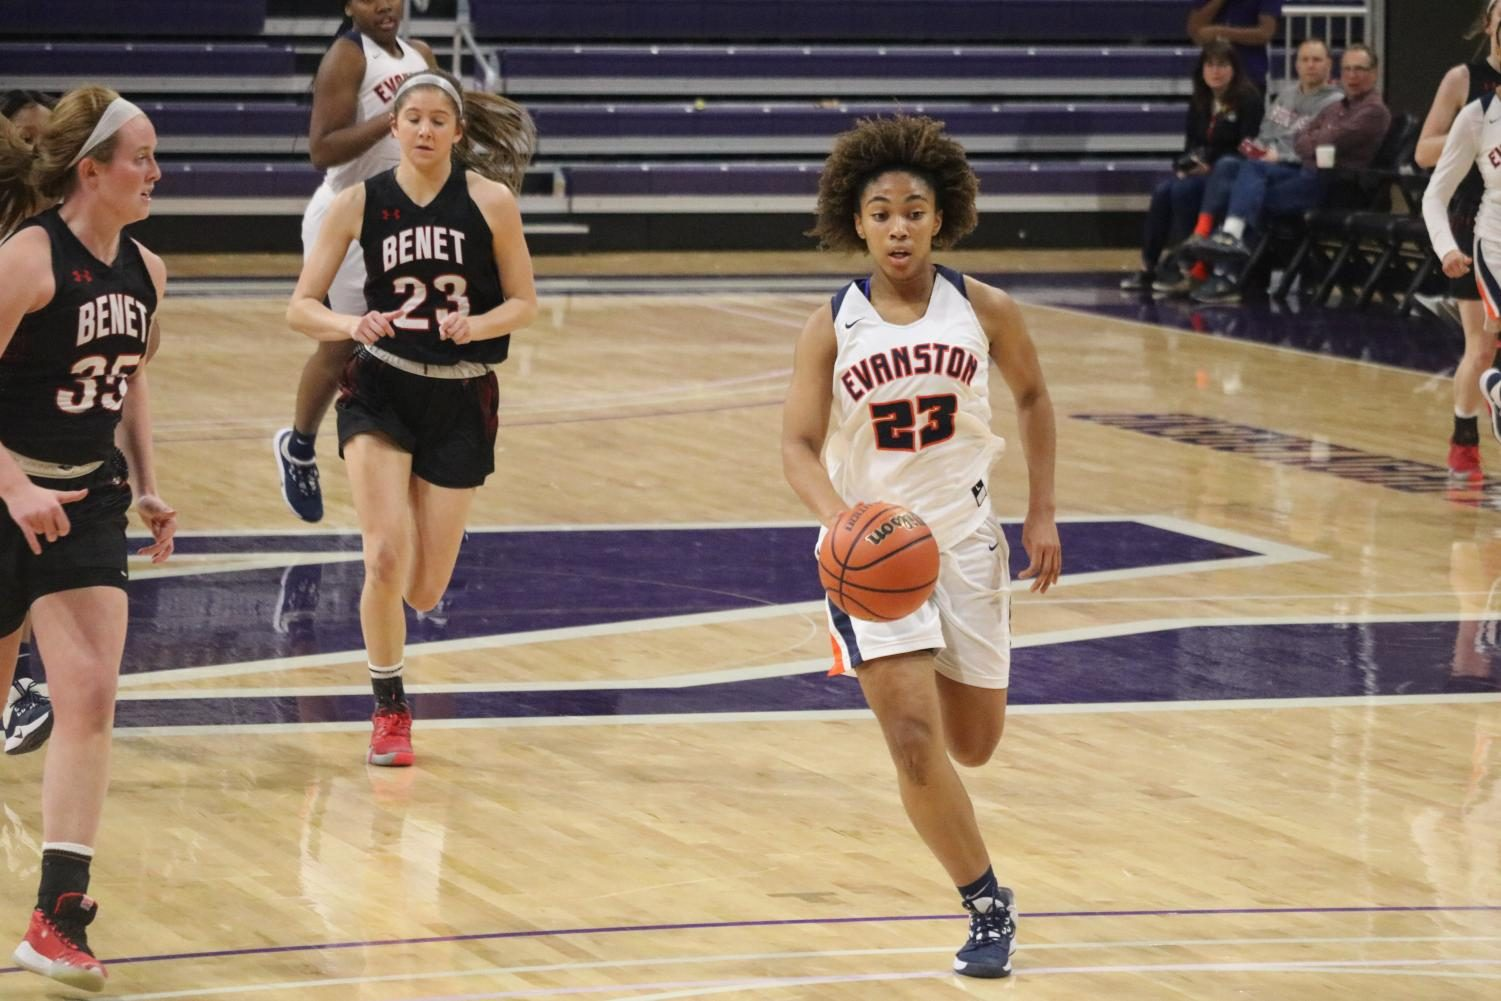 Senior Kayla Henning dribbles ball down the court at last night's game.